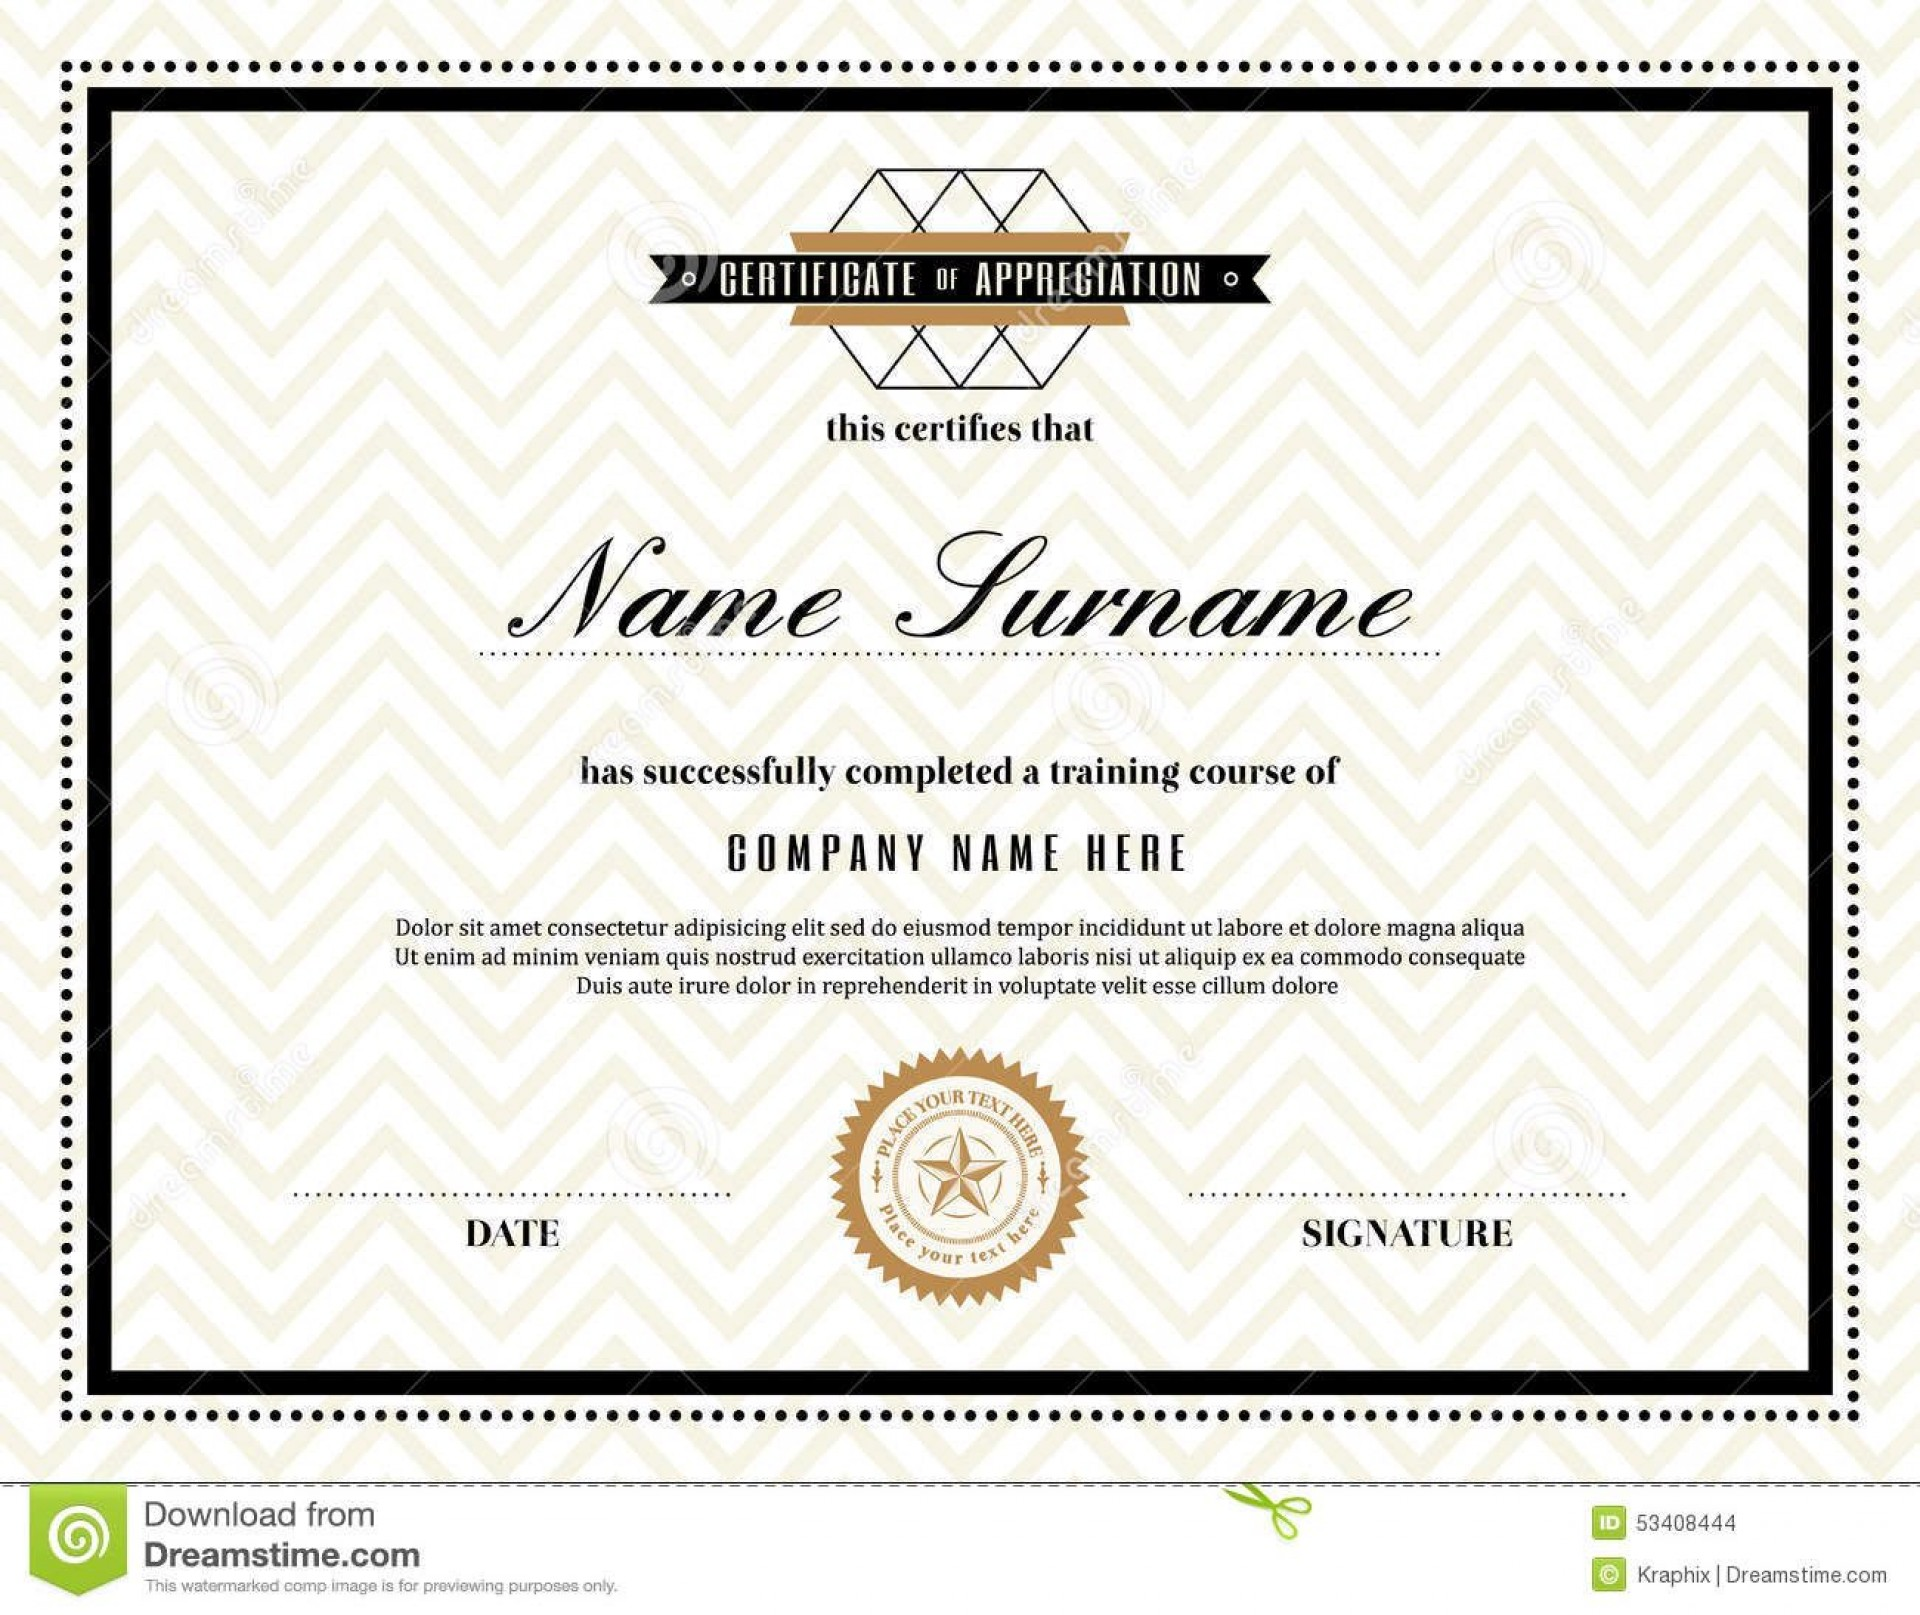 014 Unforgettable Certificate Of Appreciation Template Free Highest Quality  Microsoft Word Download Publisher Editable1920